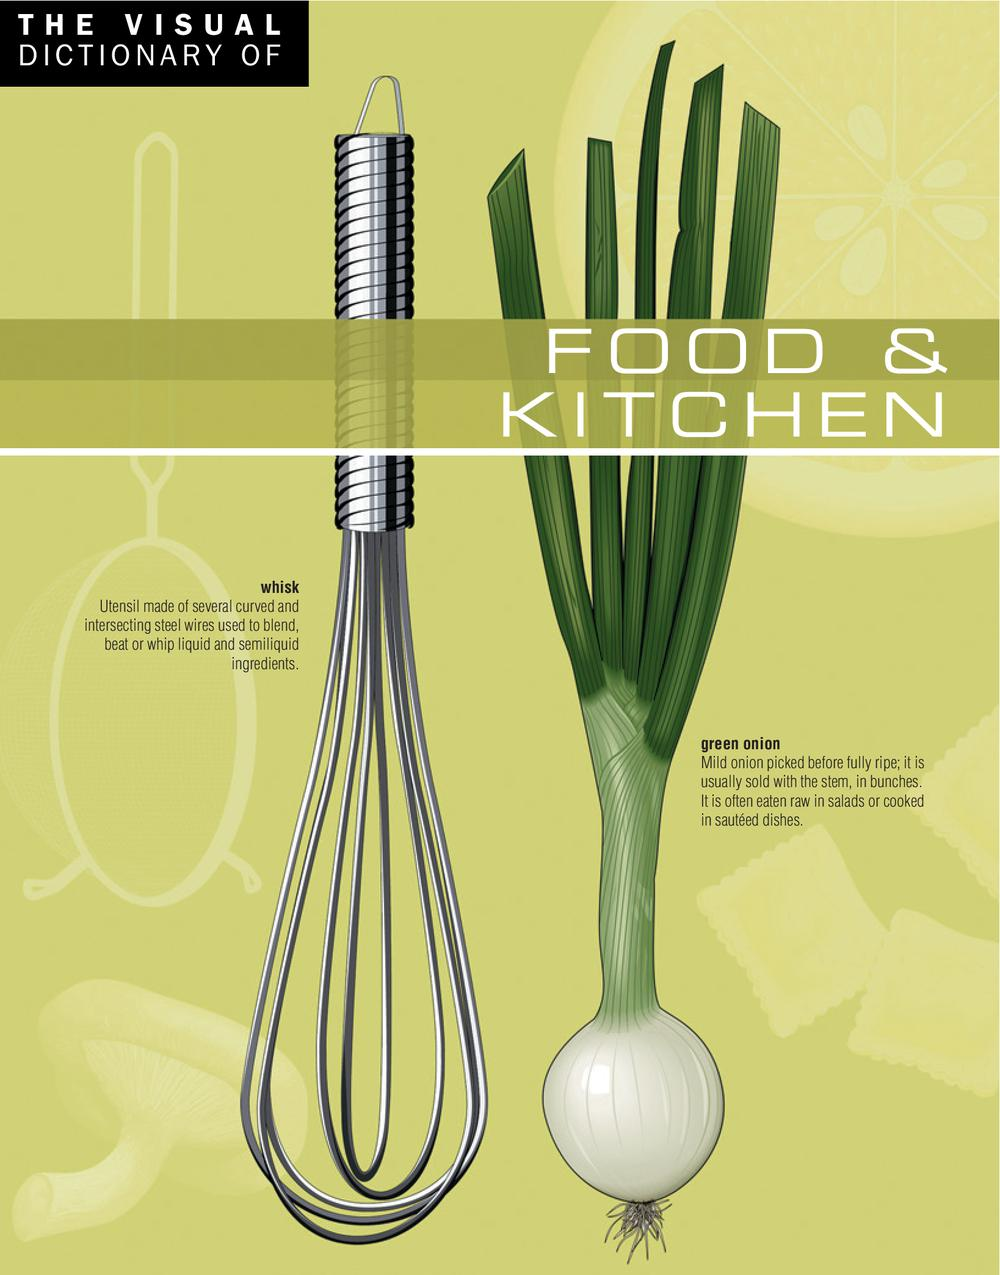 Vignette du livre The Visual Dictionary of Food & Kitchen - Jean-Claude Corbeil, Ariane Archambault